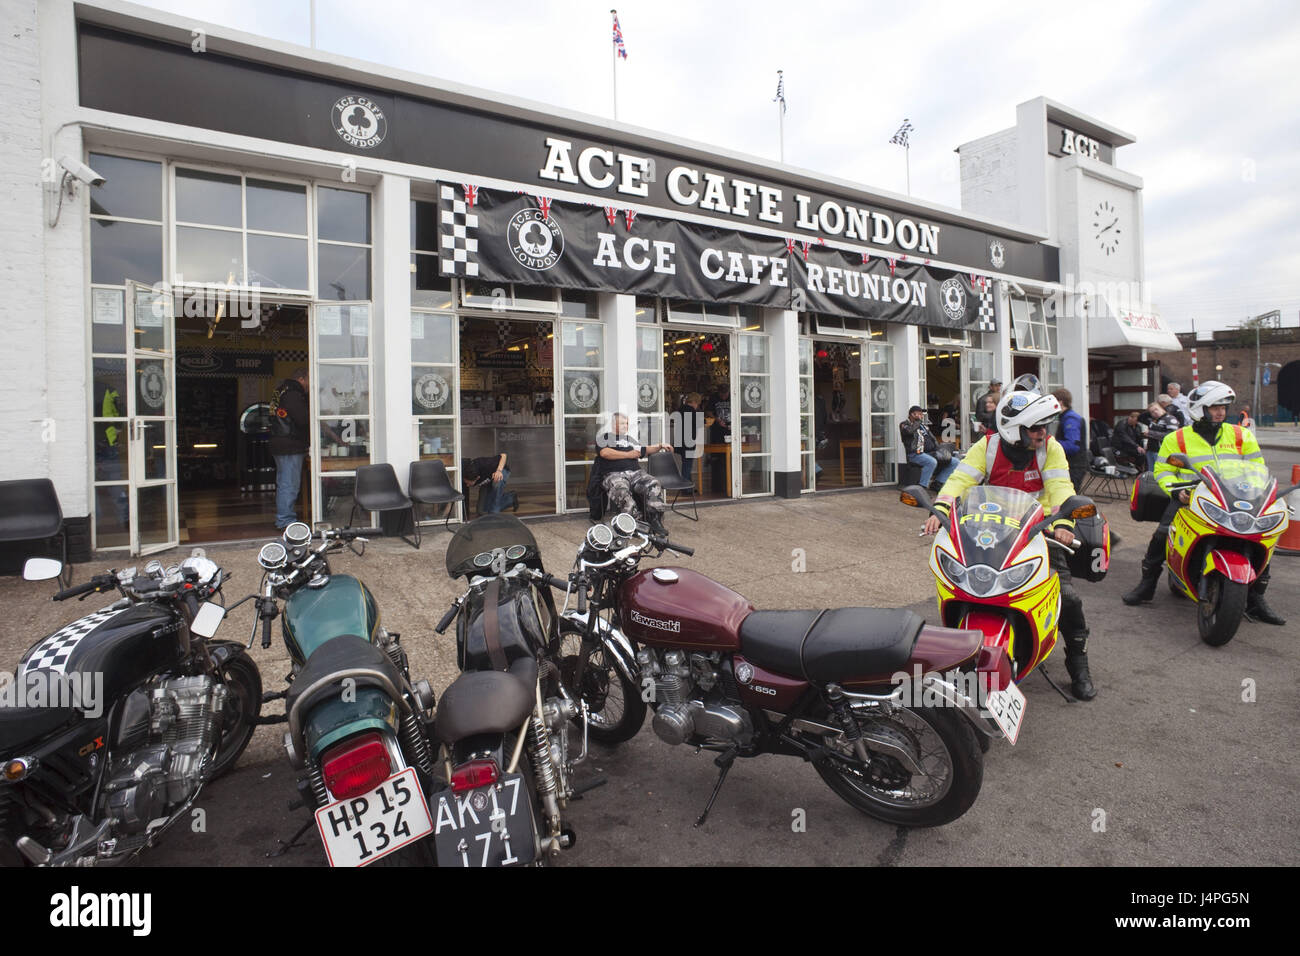 Great Britain, England, London, Ace cafe, Reunion, motorcycles, - Stock Image